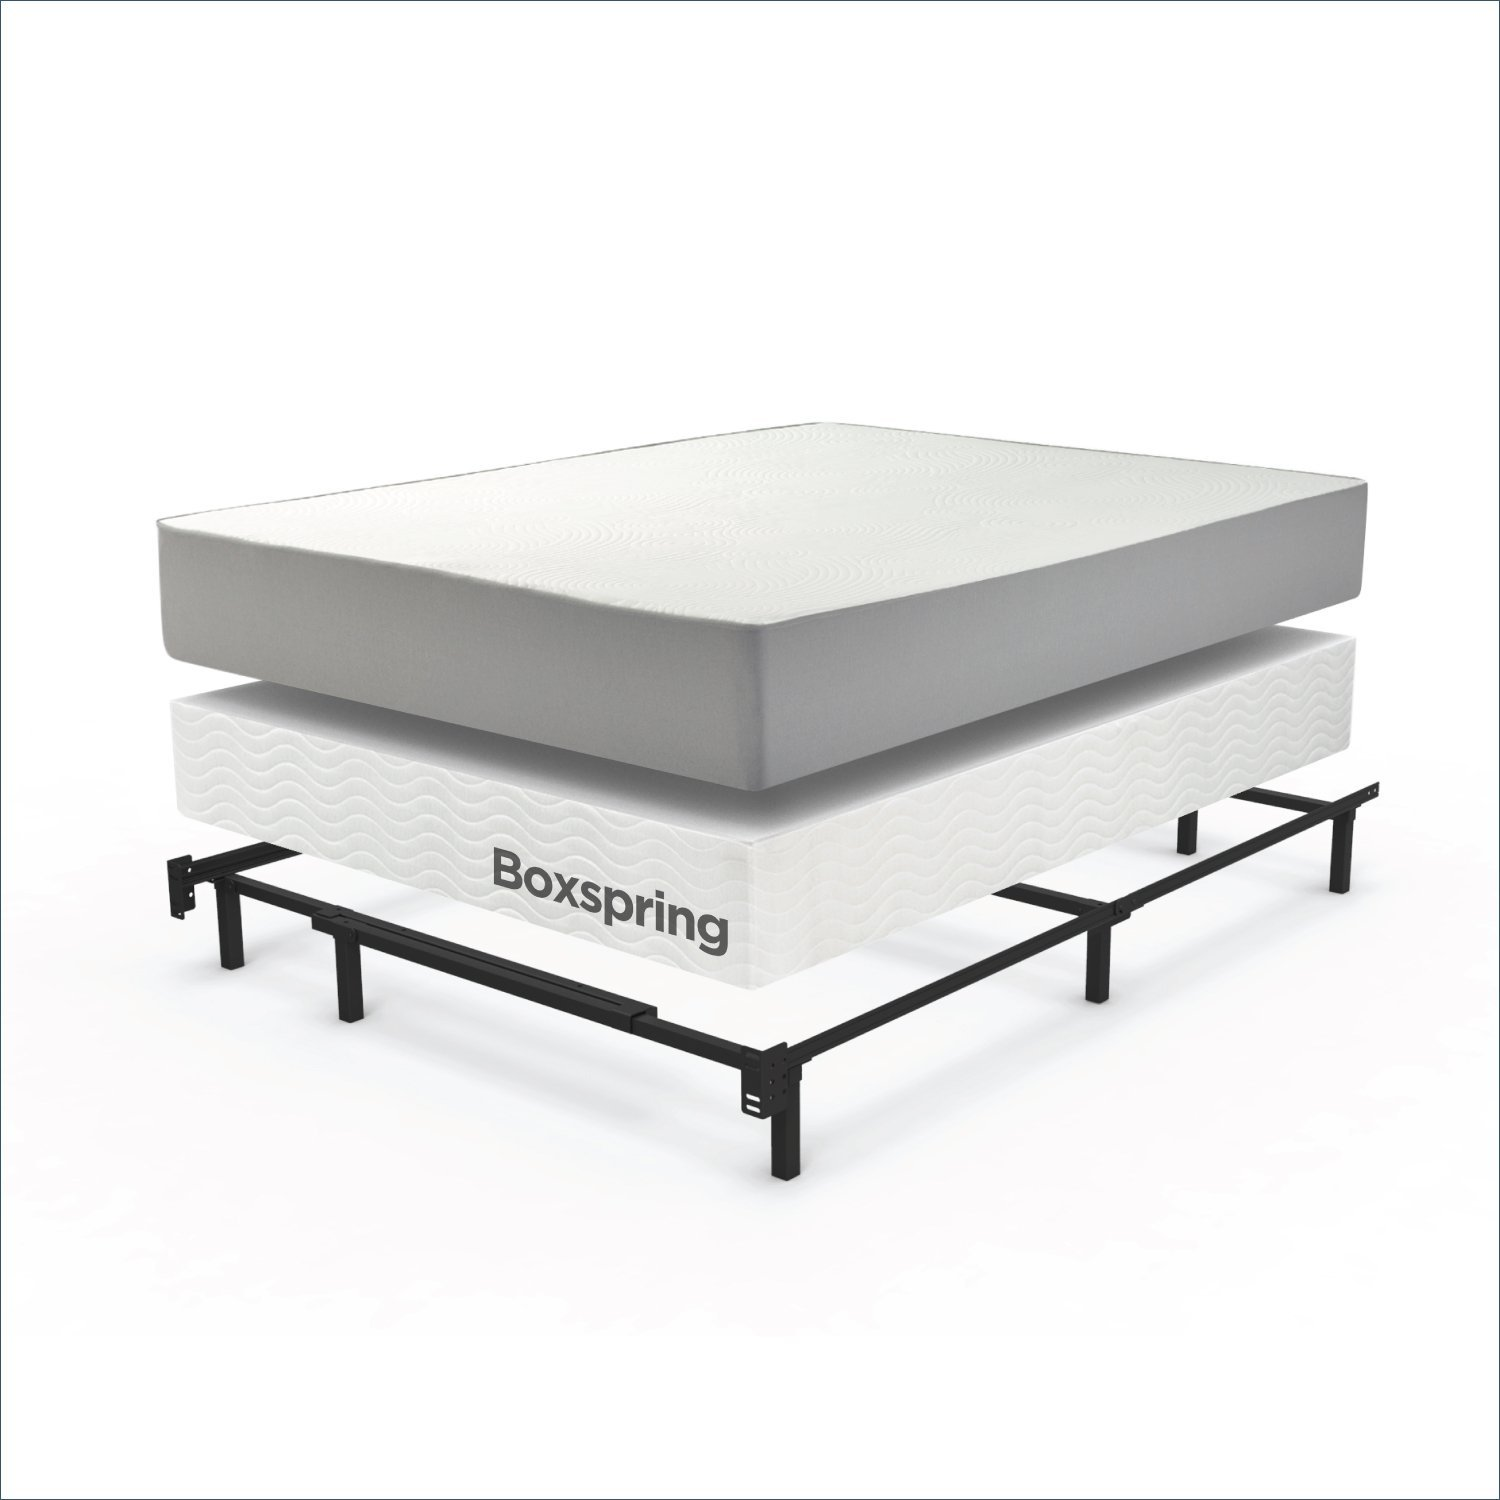 Top 10 twin size beds best reviews for you 2018 Best twin size mattress